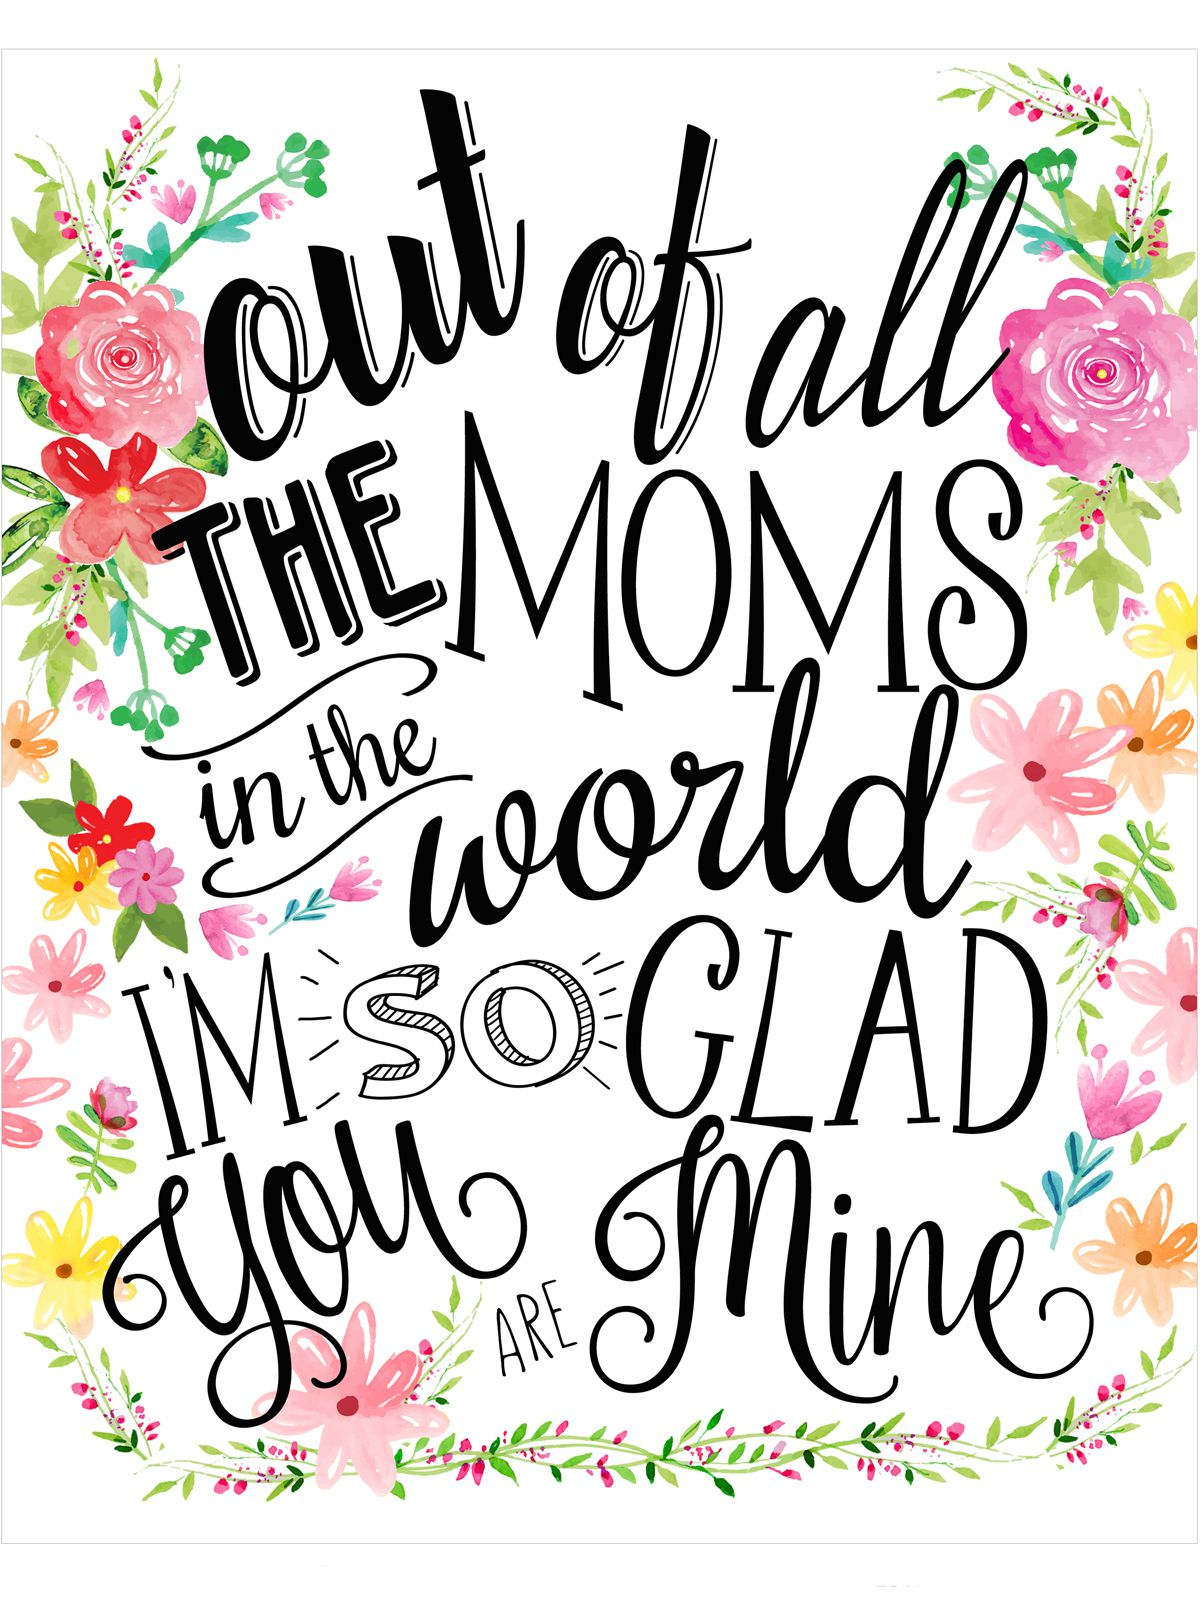 18 Mothers Day Cards - Free Printable Mother's Day Cards - Free Printable Mothers Day Cards No Download